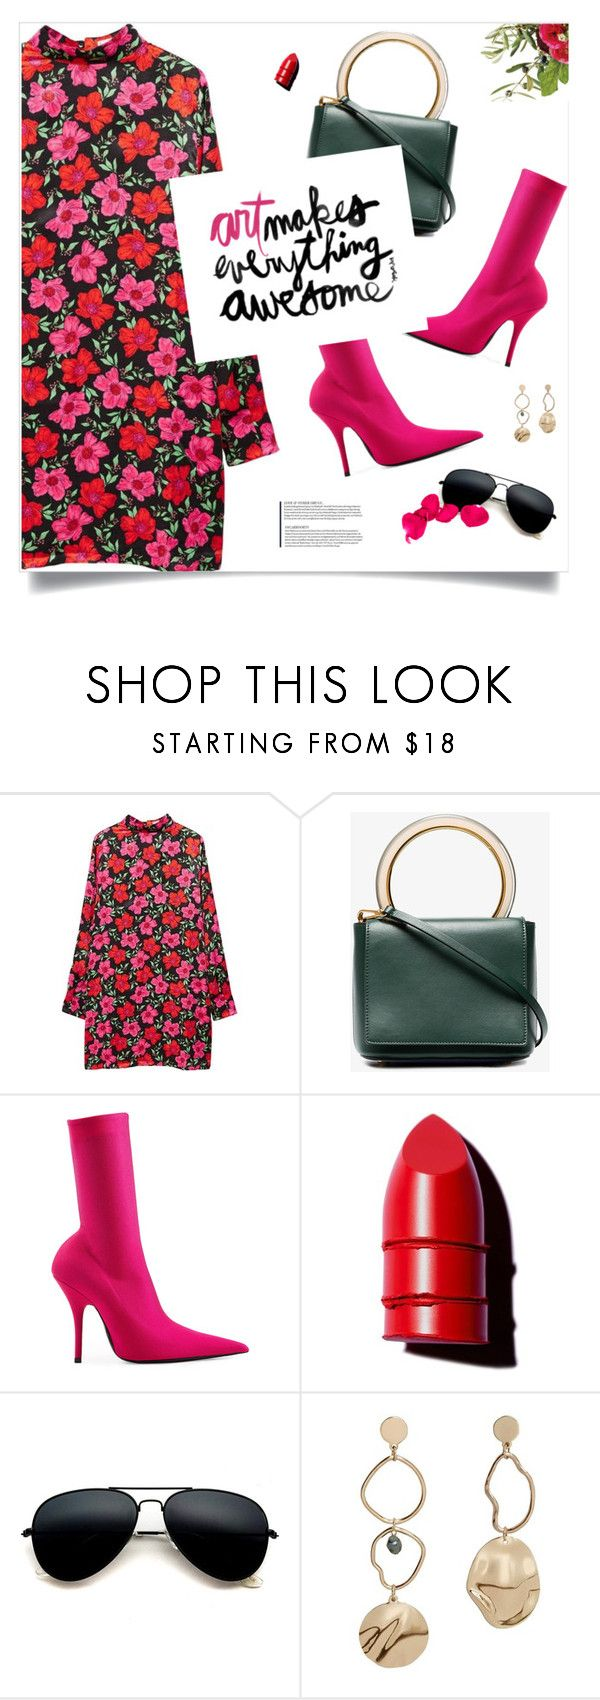 """""""Spring"""" by magdafunk ❤ liked on Polyvore featuring MANGO, Marni, Balenciaga, Anastasia Beverly Hills, Guide London, hotpink, floraldress, pinkboots and spring2018"""